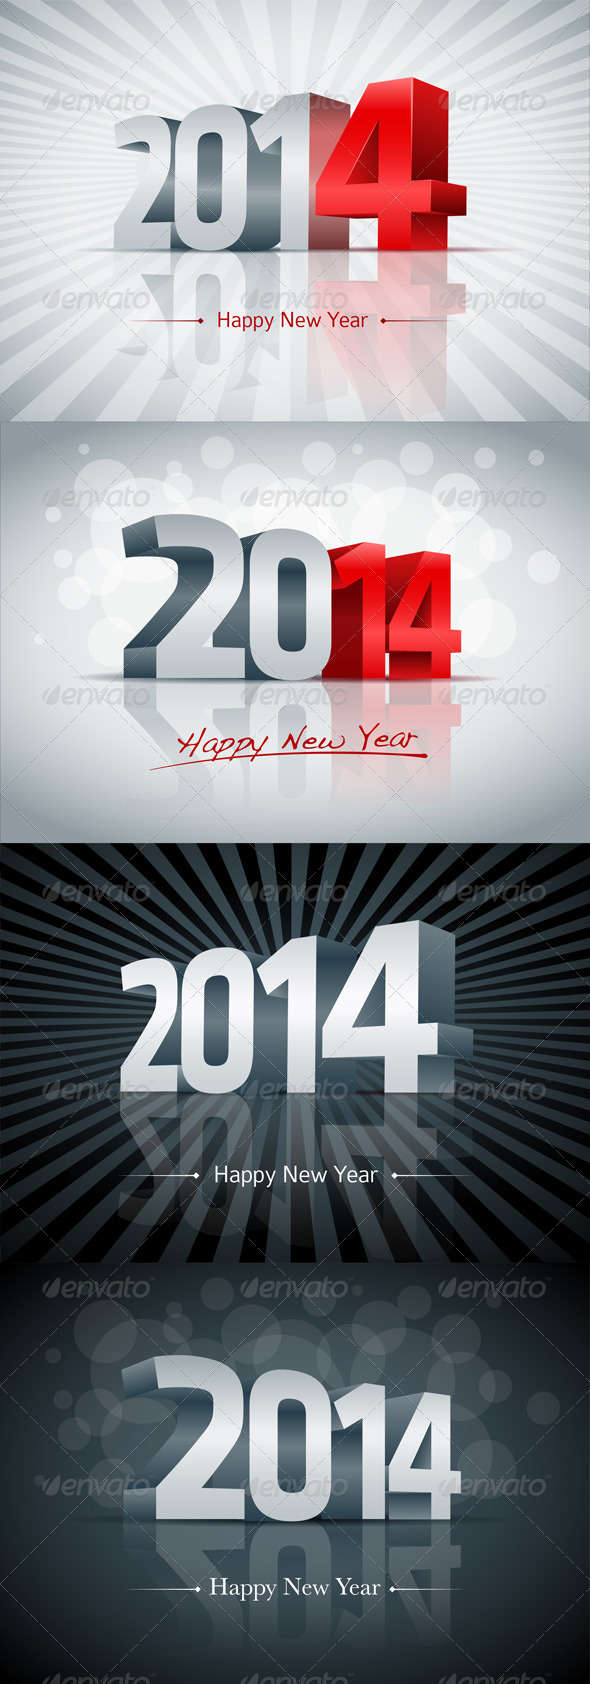 Year 2014 Greeting Card Set